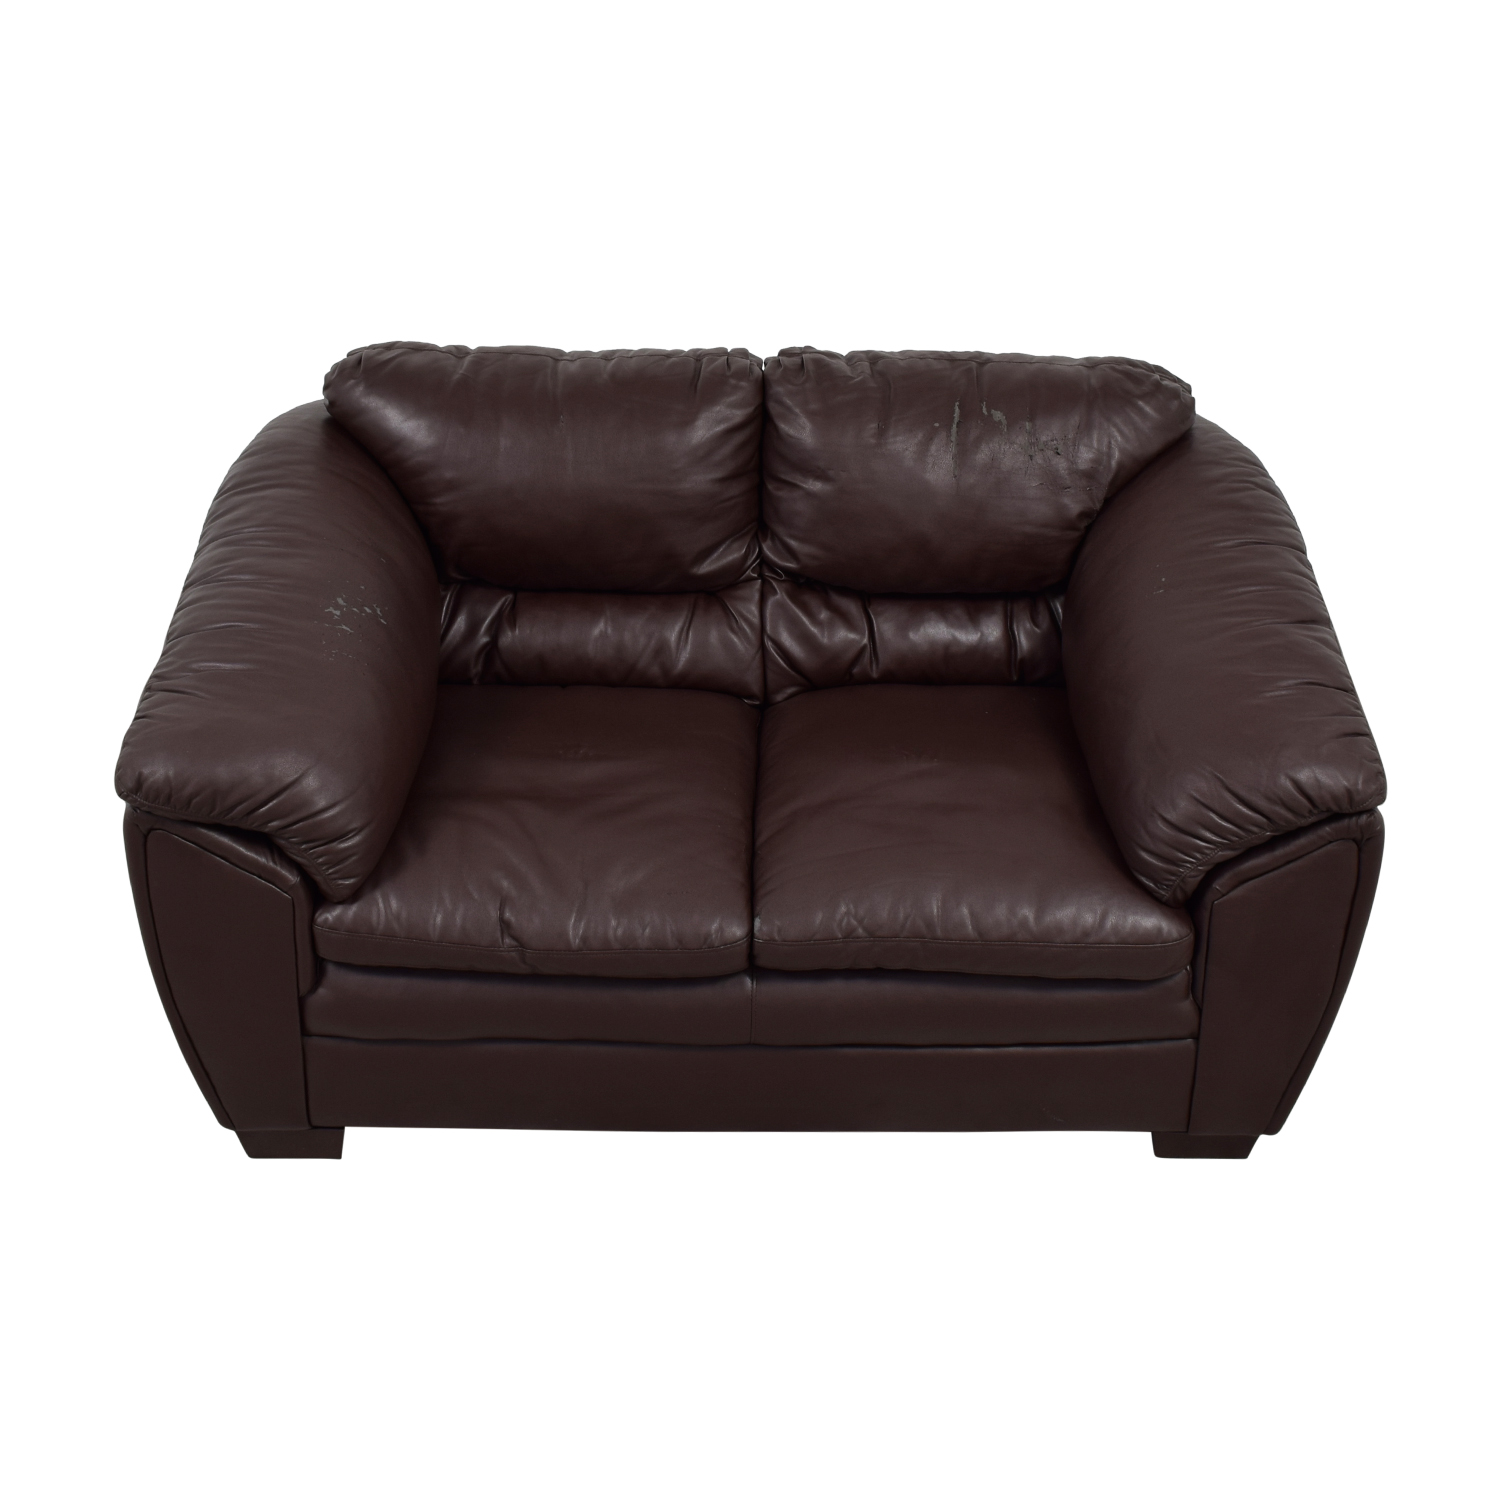 Brown Faux Leather Love Seat dimensions